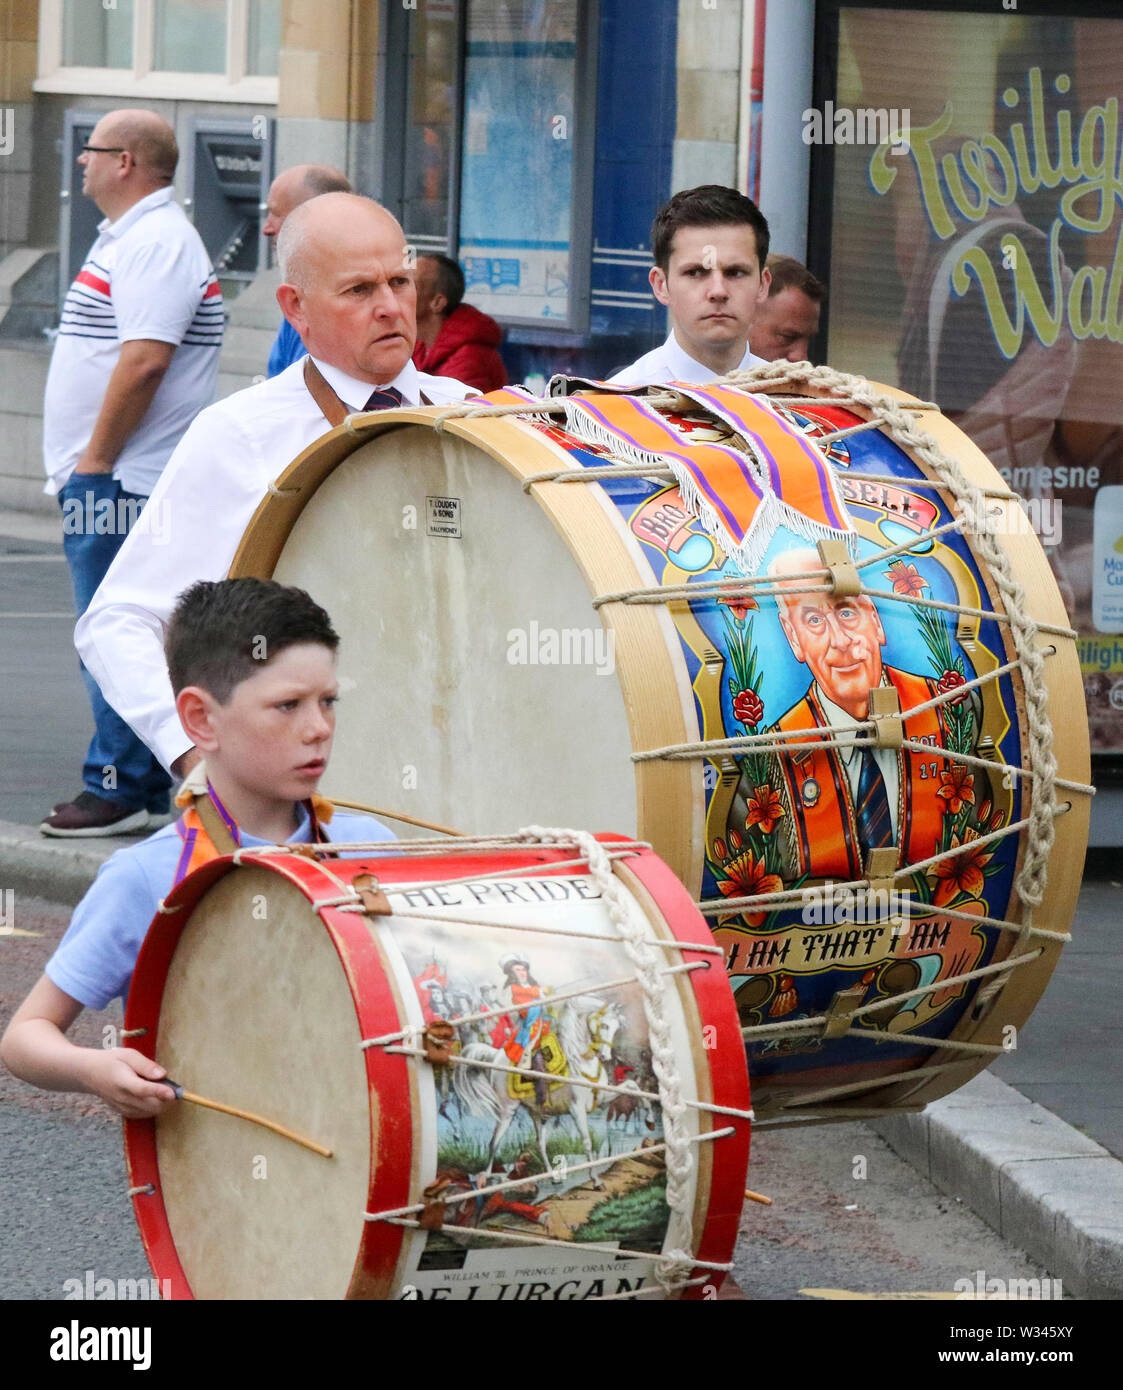 Lurgan, County Armagh, Northern Ireland.12 July 2019. The Twelfth of July is marked by Orange Order parades across Northern Ireland. Lurgan District left their headquarters at Brownlow House before parading up the town to the war memorial and then headed to the town of Tandragee for the main County Armagh demonstration. The parades across Northern Ireland mark the victory of William of Orange over James at the Battle of the Boyne in 1690. Lambeg drums being played. Credit: CAZIMB/Alamy Live News. - Stock Image